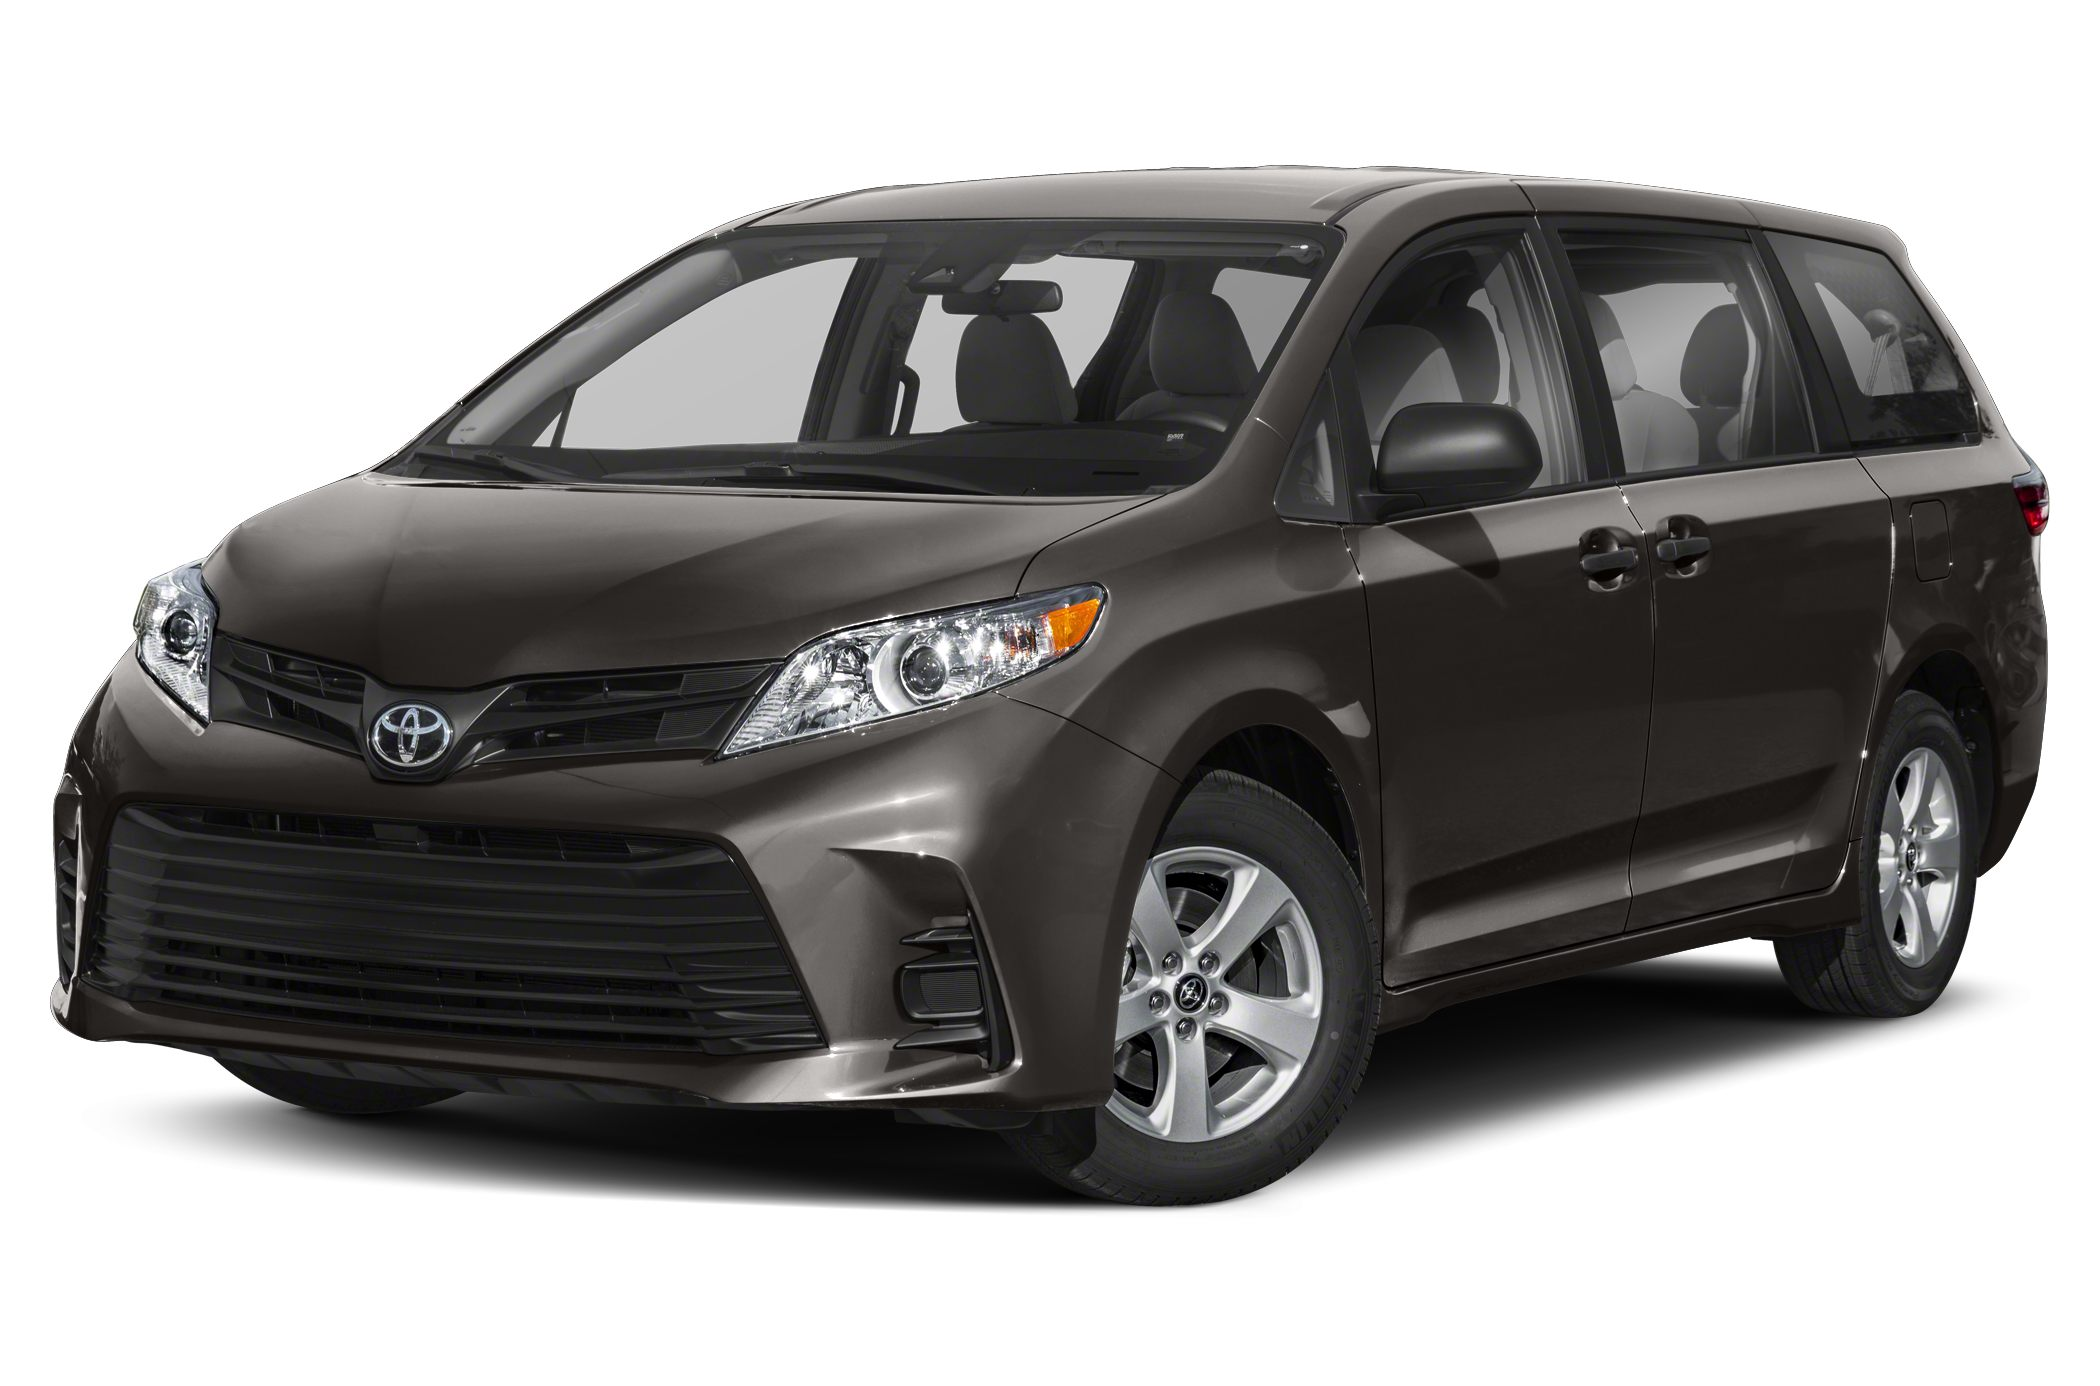 2018 Toyota Sienna LE Pearl LE 8 Passenger 2719 HighwayCity MPG All prices plus tax title lice